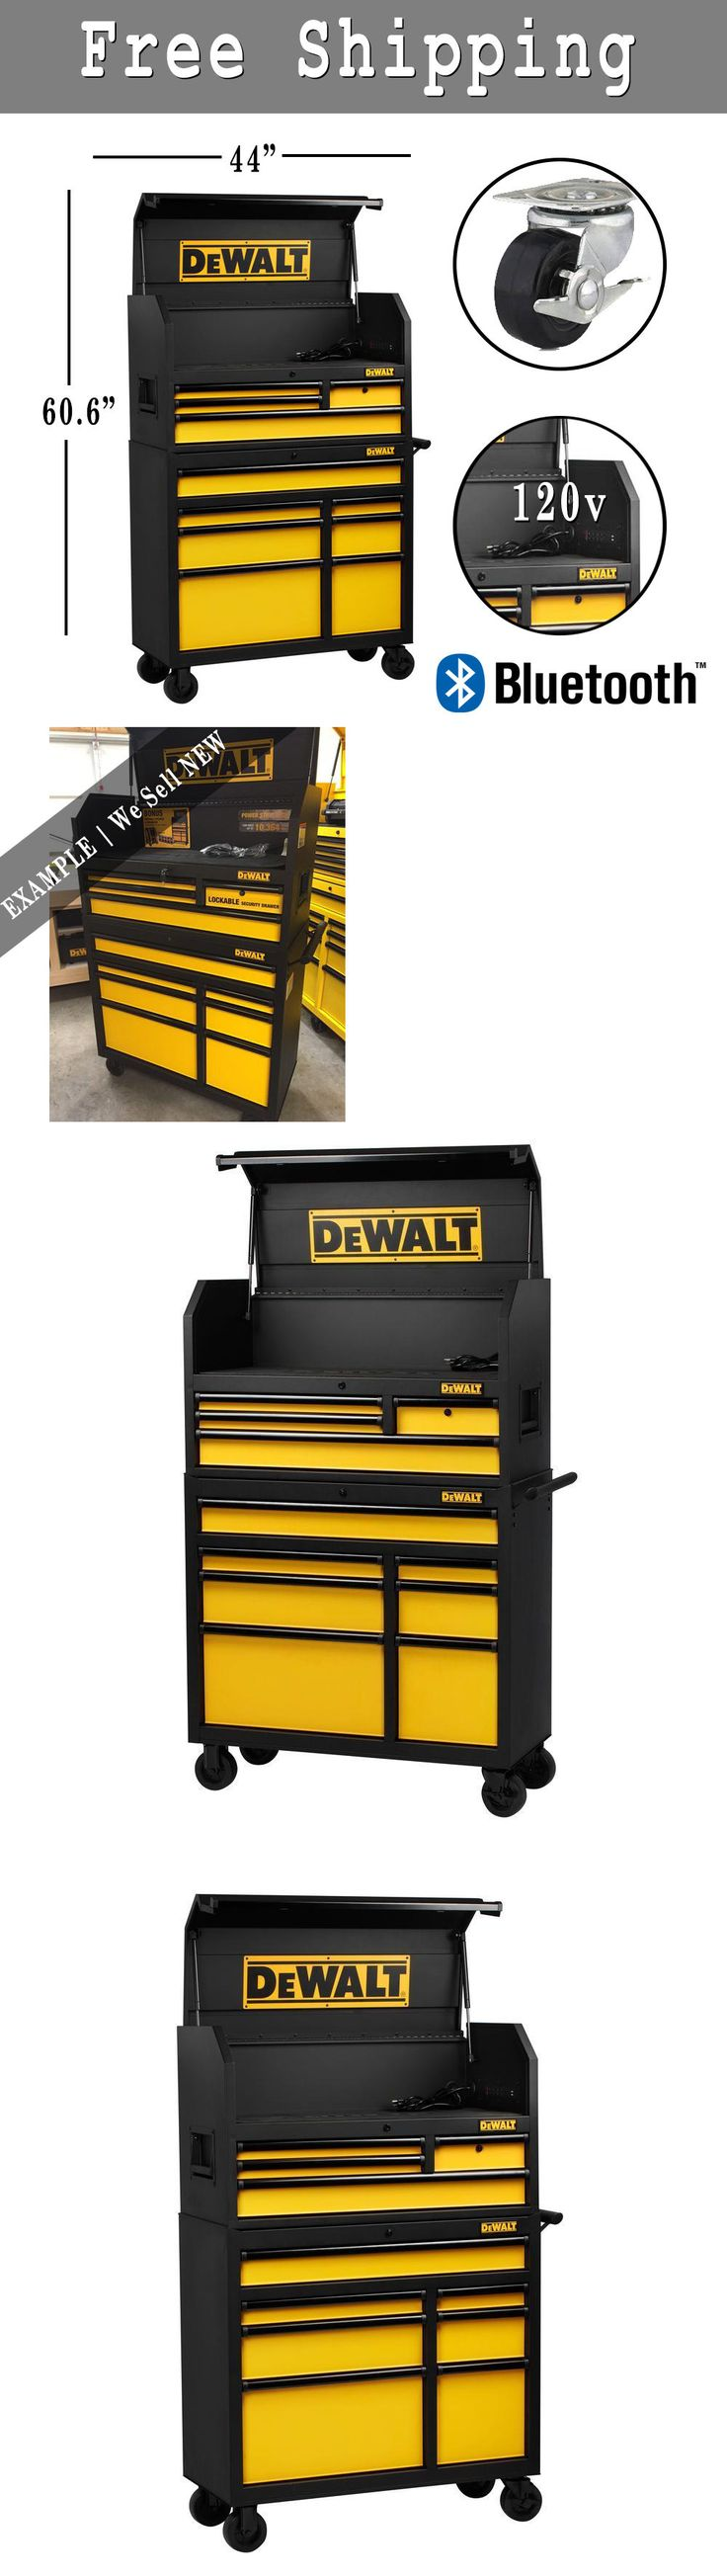 Boxes and Cabinets 42363: Dewalt Rolling Tool Box Steel Storage Drawer Rubber Cabinet Garage Wheel | New -> BUY IT NOW ONLY: $939 on eBay!